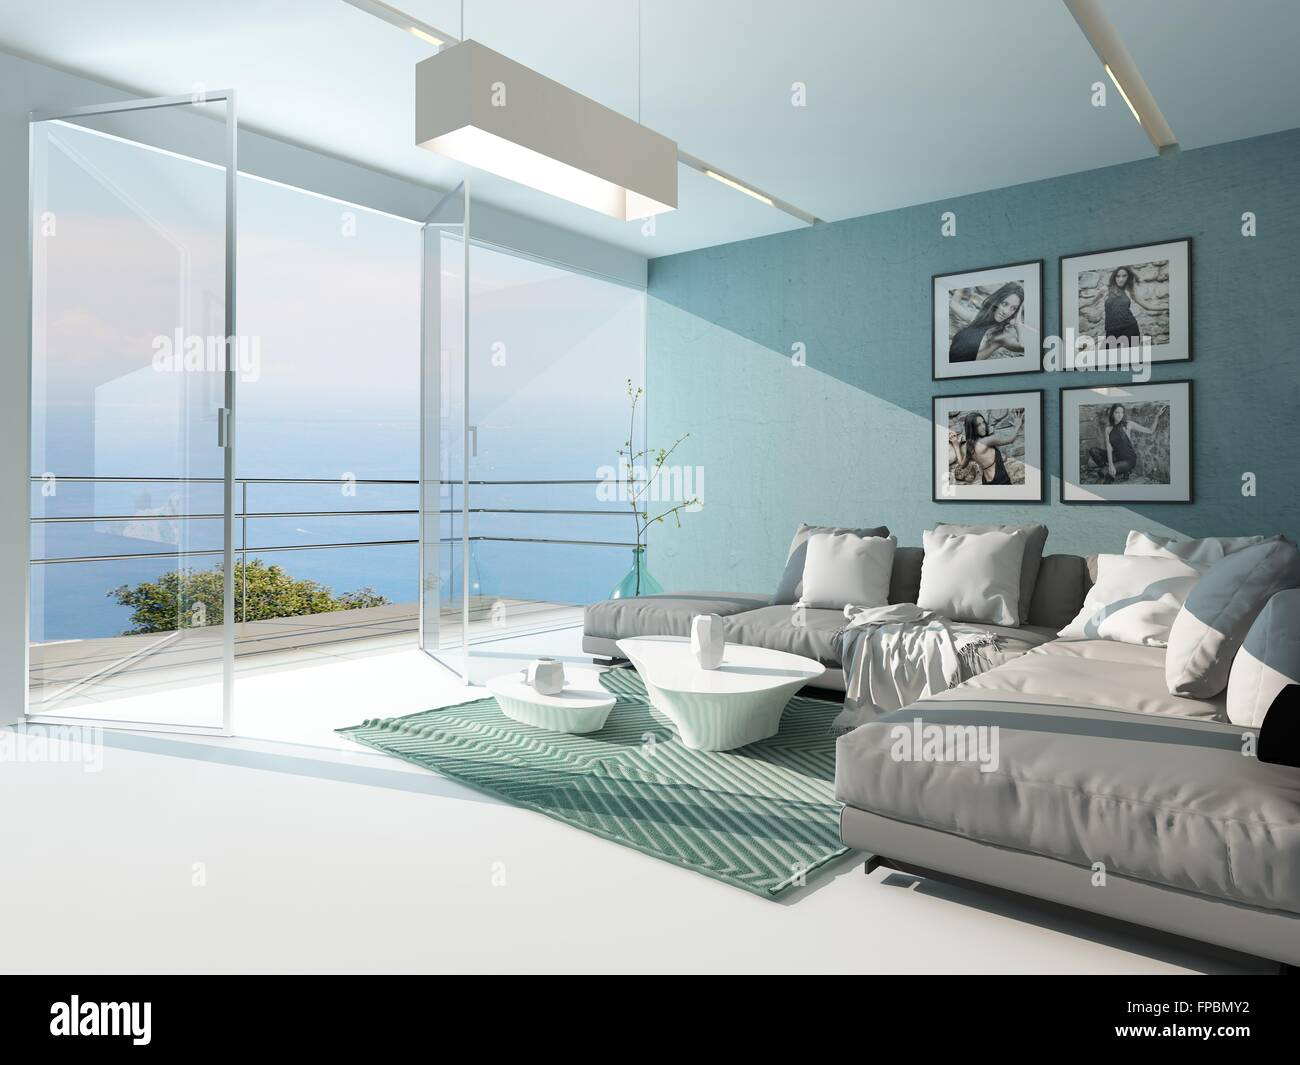 Luxury Waterfront Apartment Living Room With A Floor To Ceiling Glass  Window Overlooking The